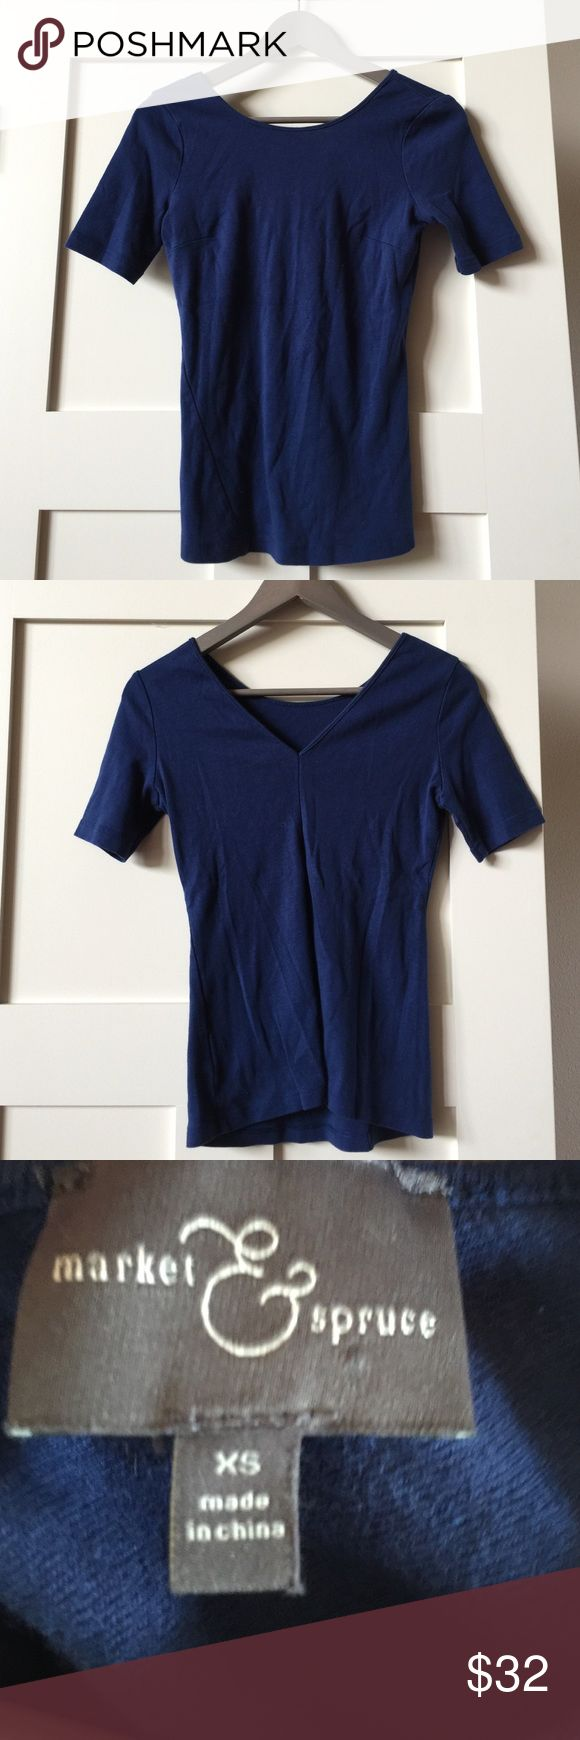 Market & Spruce a Stitch Fix brand SzXS top Market & Spruce a Stitch Fix brand SzXS top.  Lots of detail.  Has a beautiful v cut in the upper back.  Would look cute with skinny jeans and heels or flats.  Comes from free and smoke free home. Market and Spruce a Stitch Fix brand Tops Tees - Short Sleeve